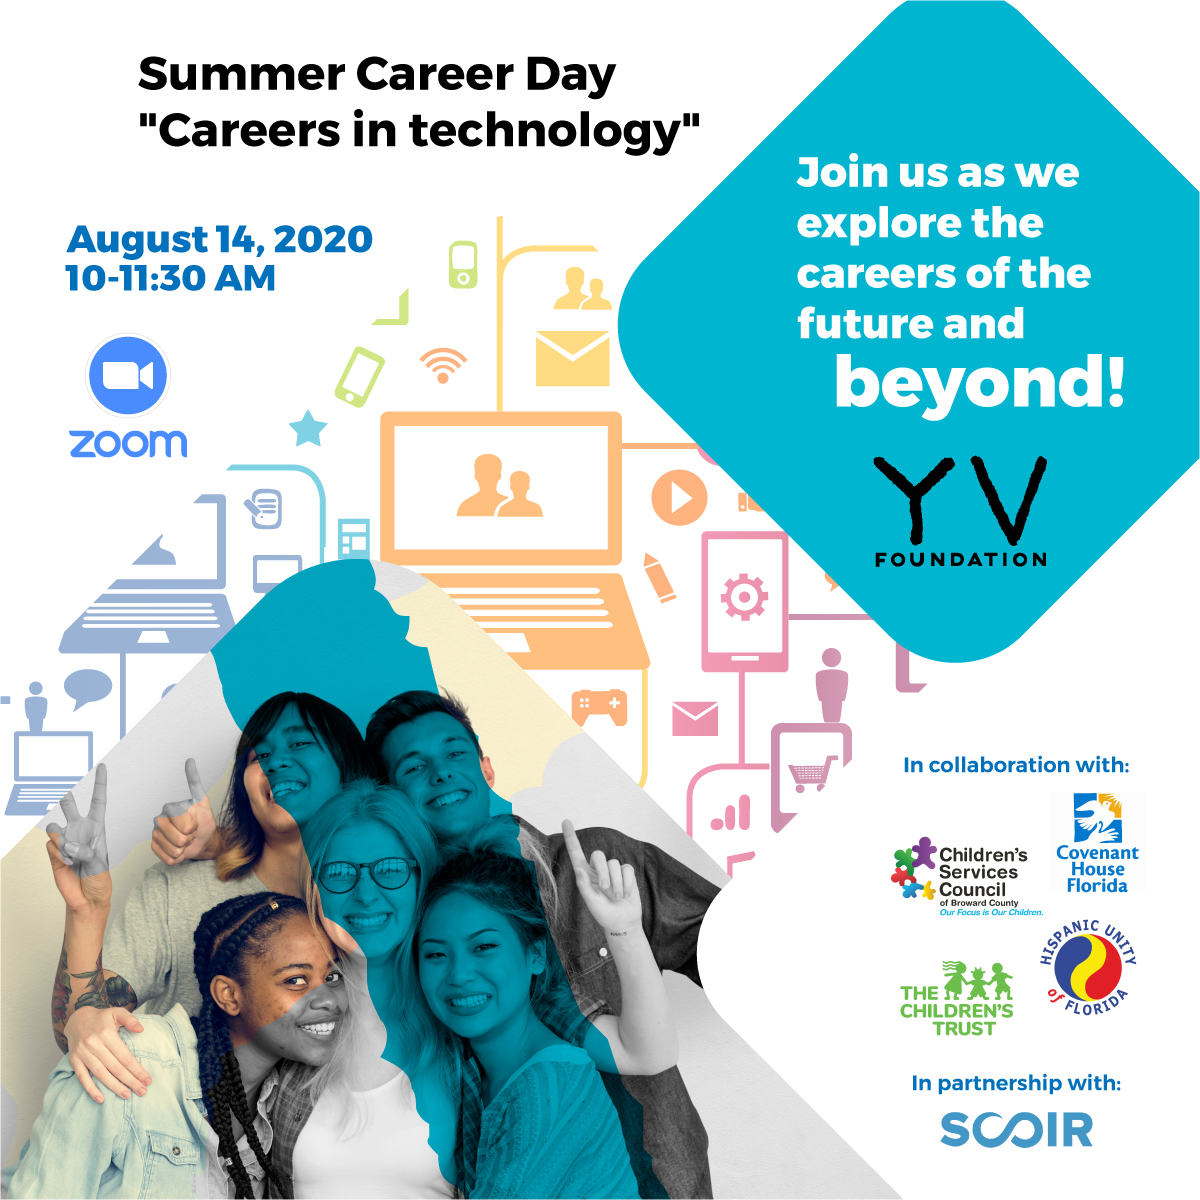 Join us as we explore the careers of the future and beyond! Click here to register.